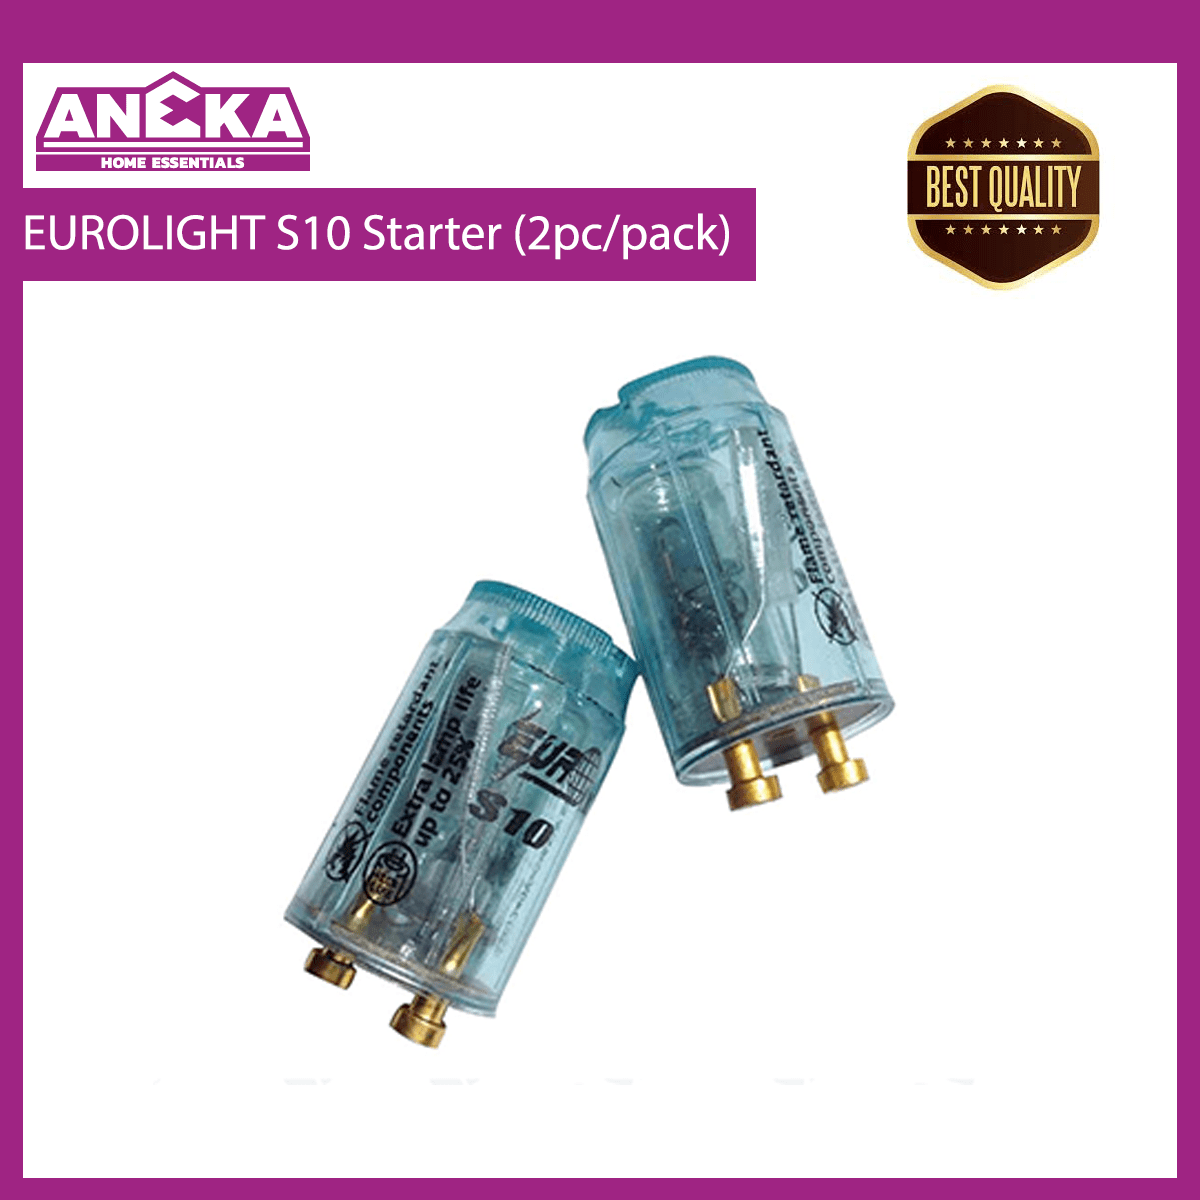 EUROLIGHT S10 Starter (2pcs/pack)